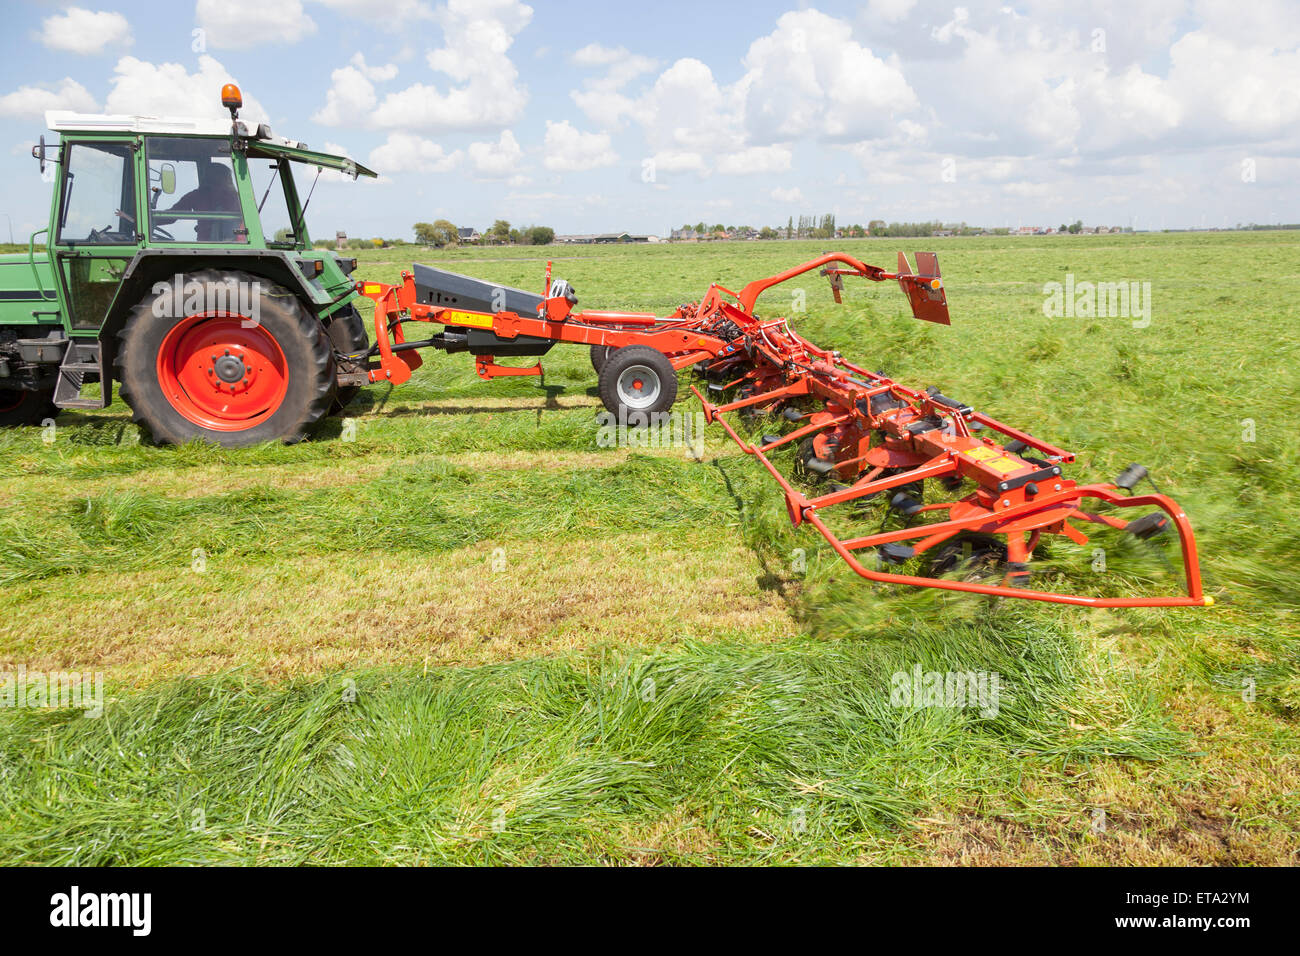 red hay turner behind tractor in green meadow in the netherlands - Stock Image